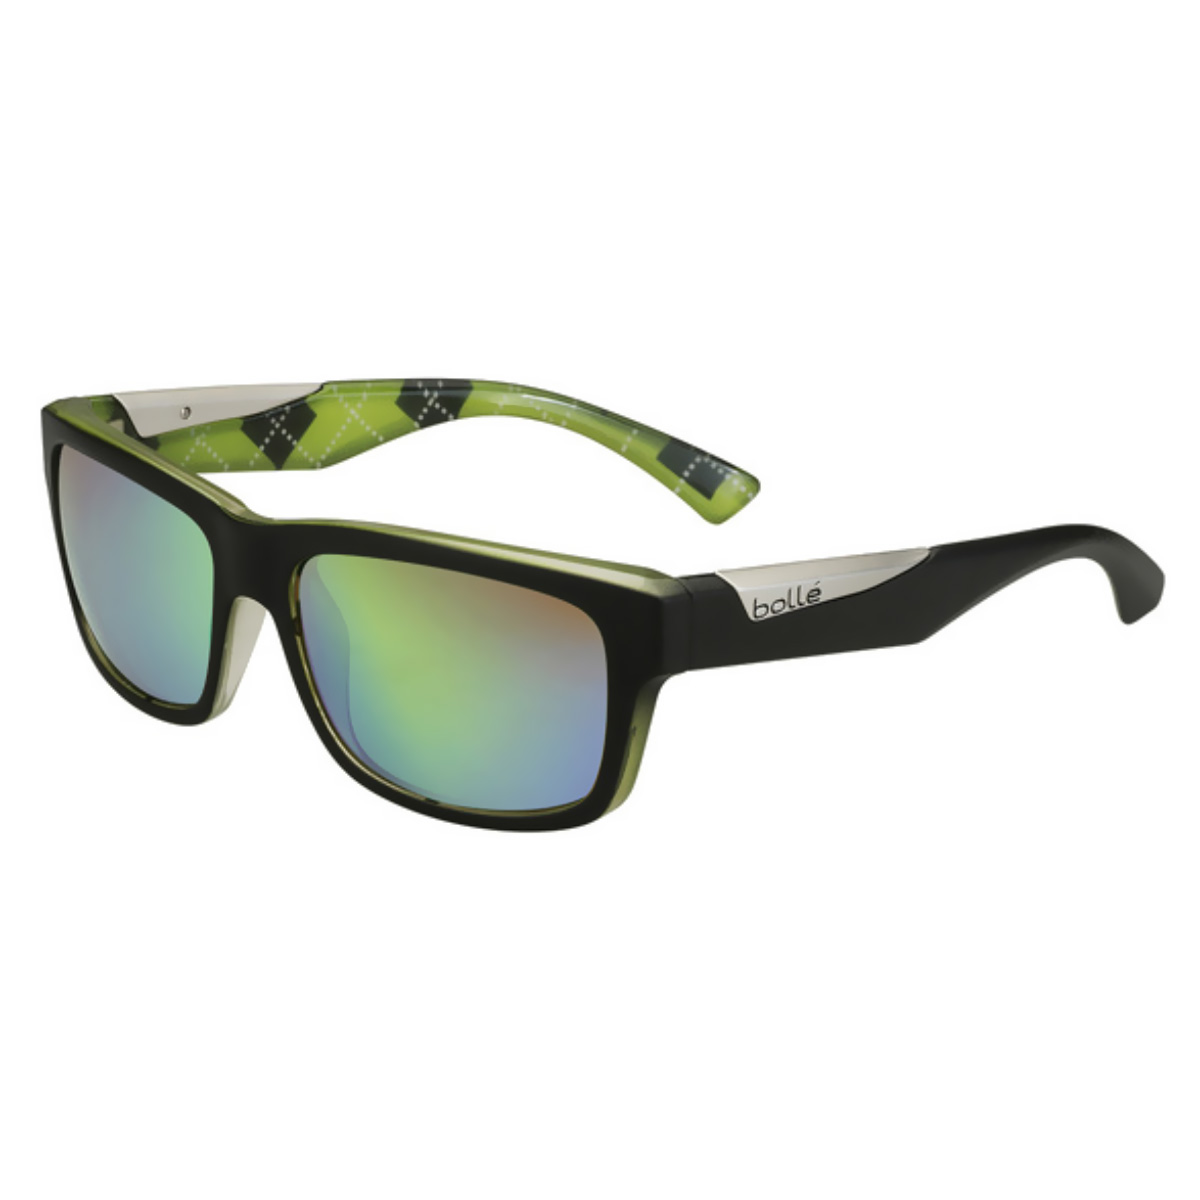 ad926203793 Bolle Jude Sunglasses (Mat Black Lime - Brown Emerald Lens ...